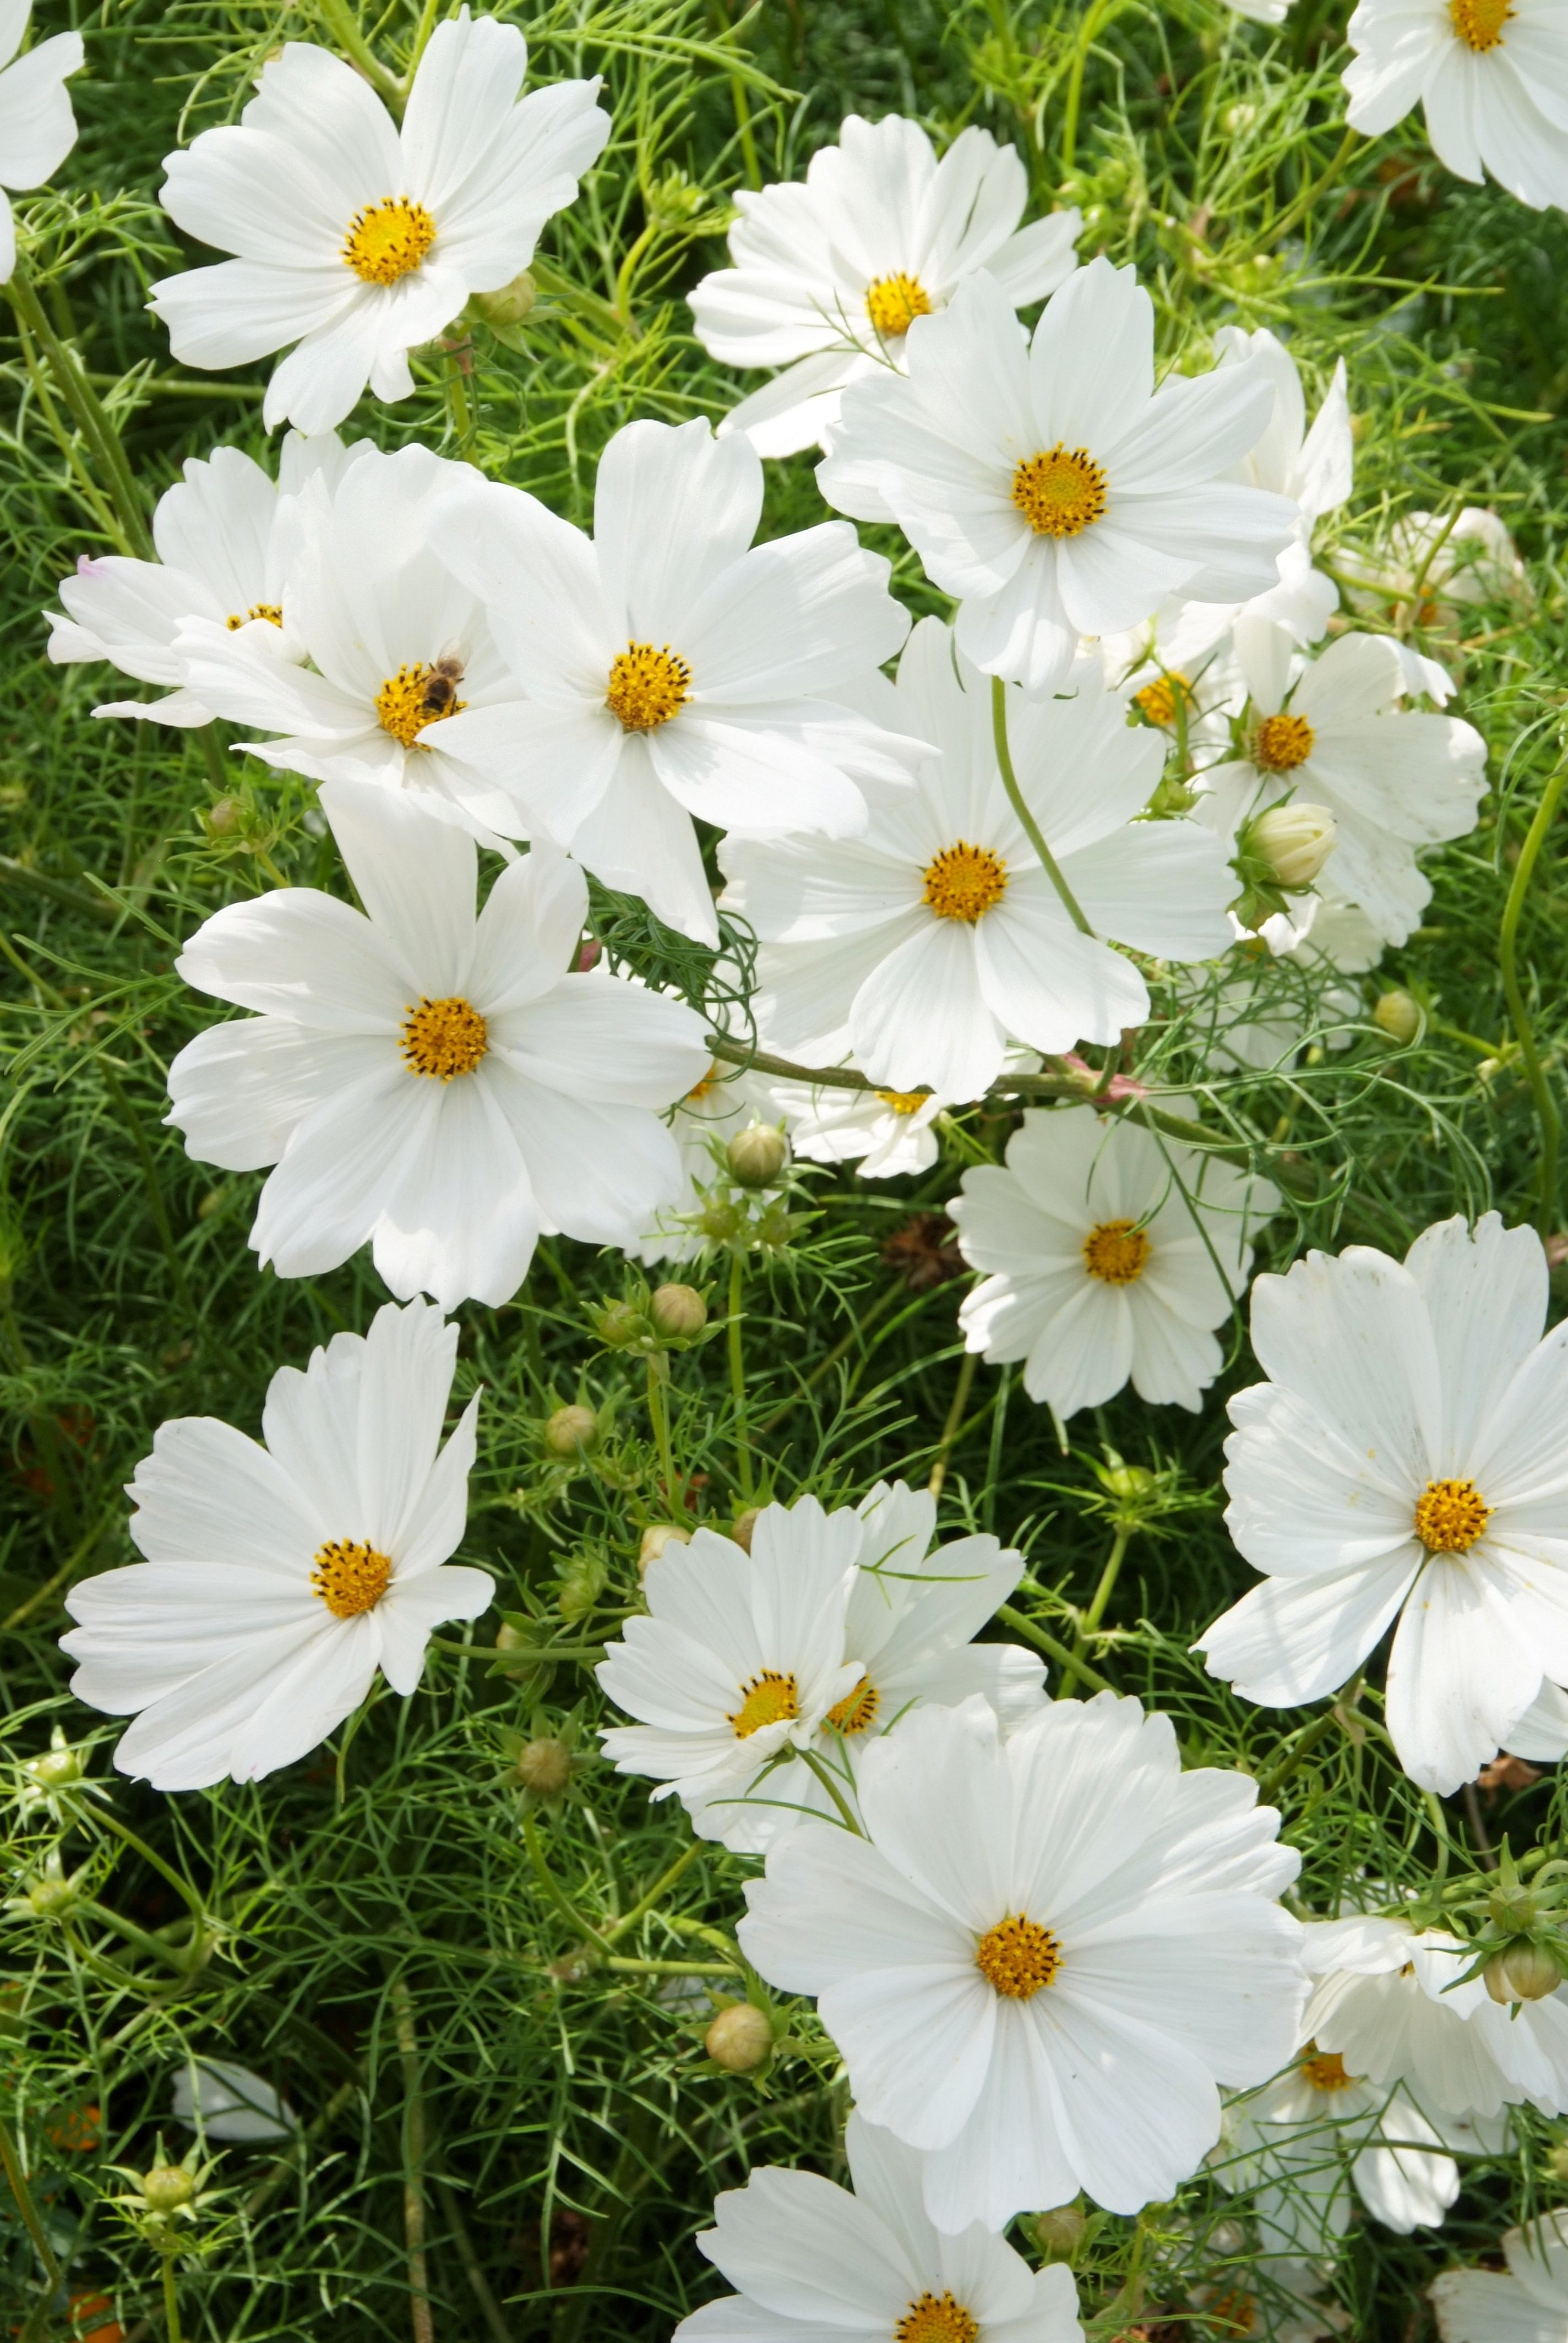 Cosmos Bipinnatus Purity Has Large Open Flowers Of Pure White With Delicate Apple Green Foliage Cosmos Flowers Moon Garden Open Flower